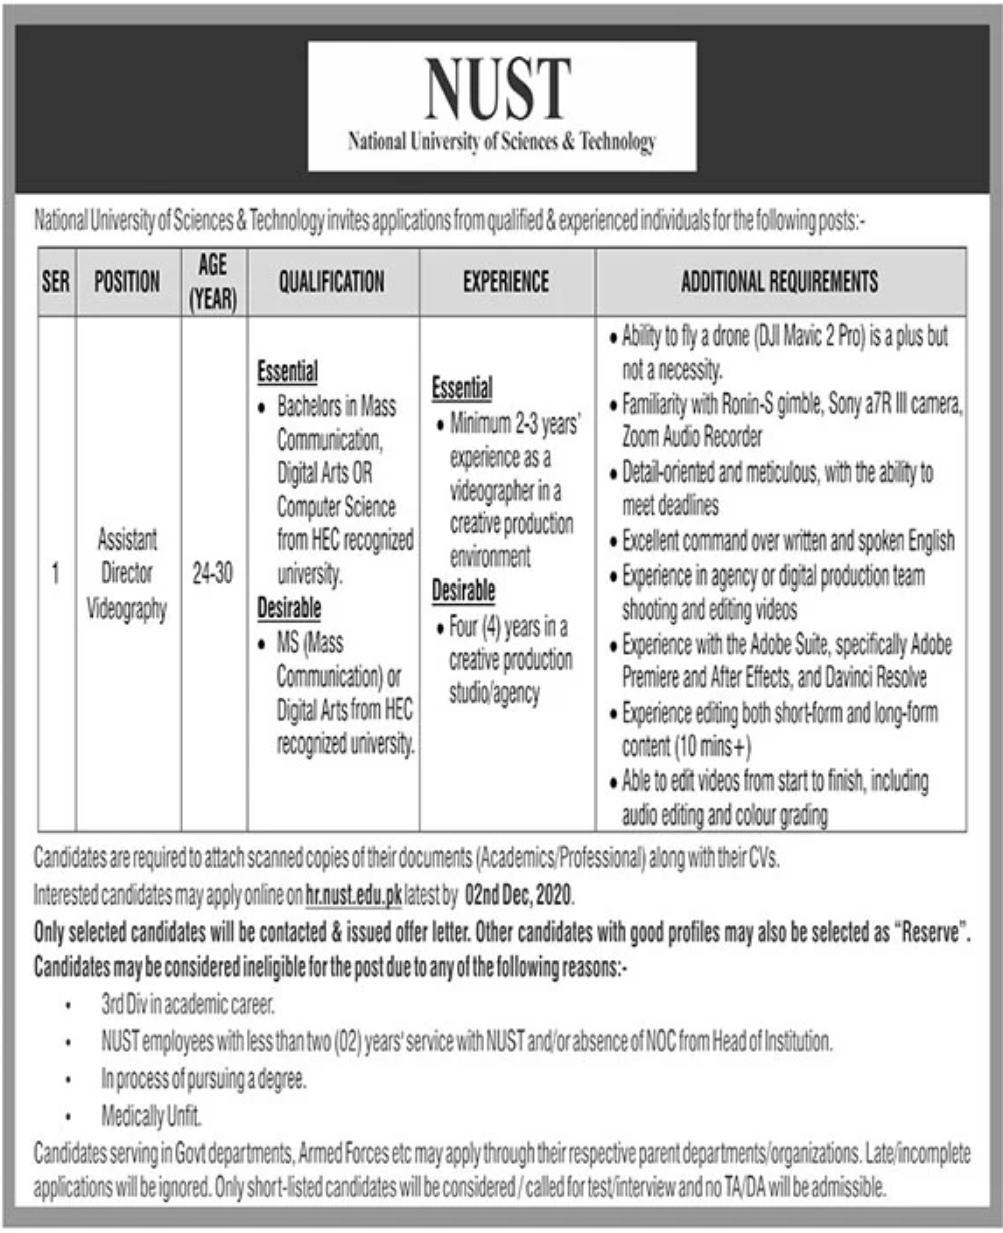 National University of Sciences & Technology NUST Jobs November 2020